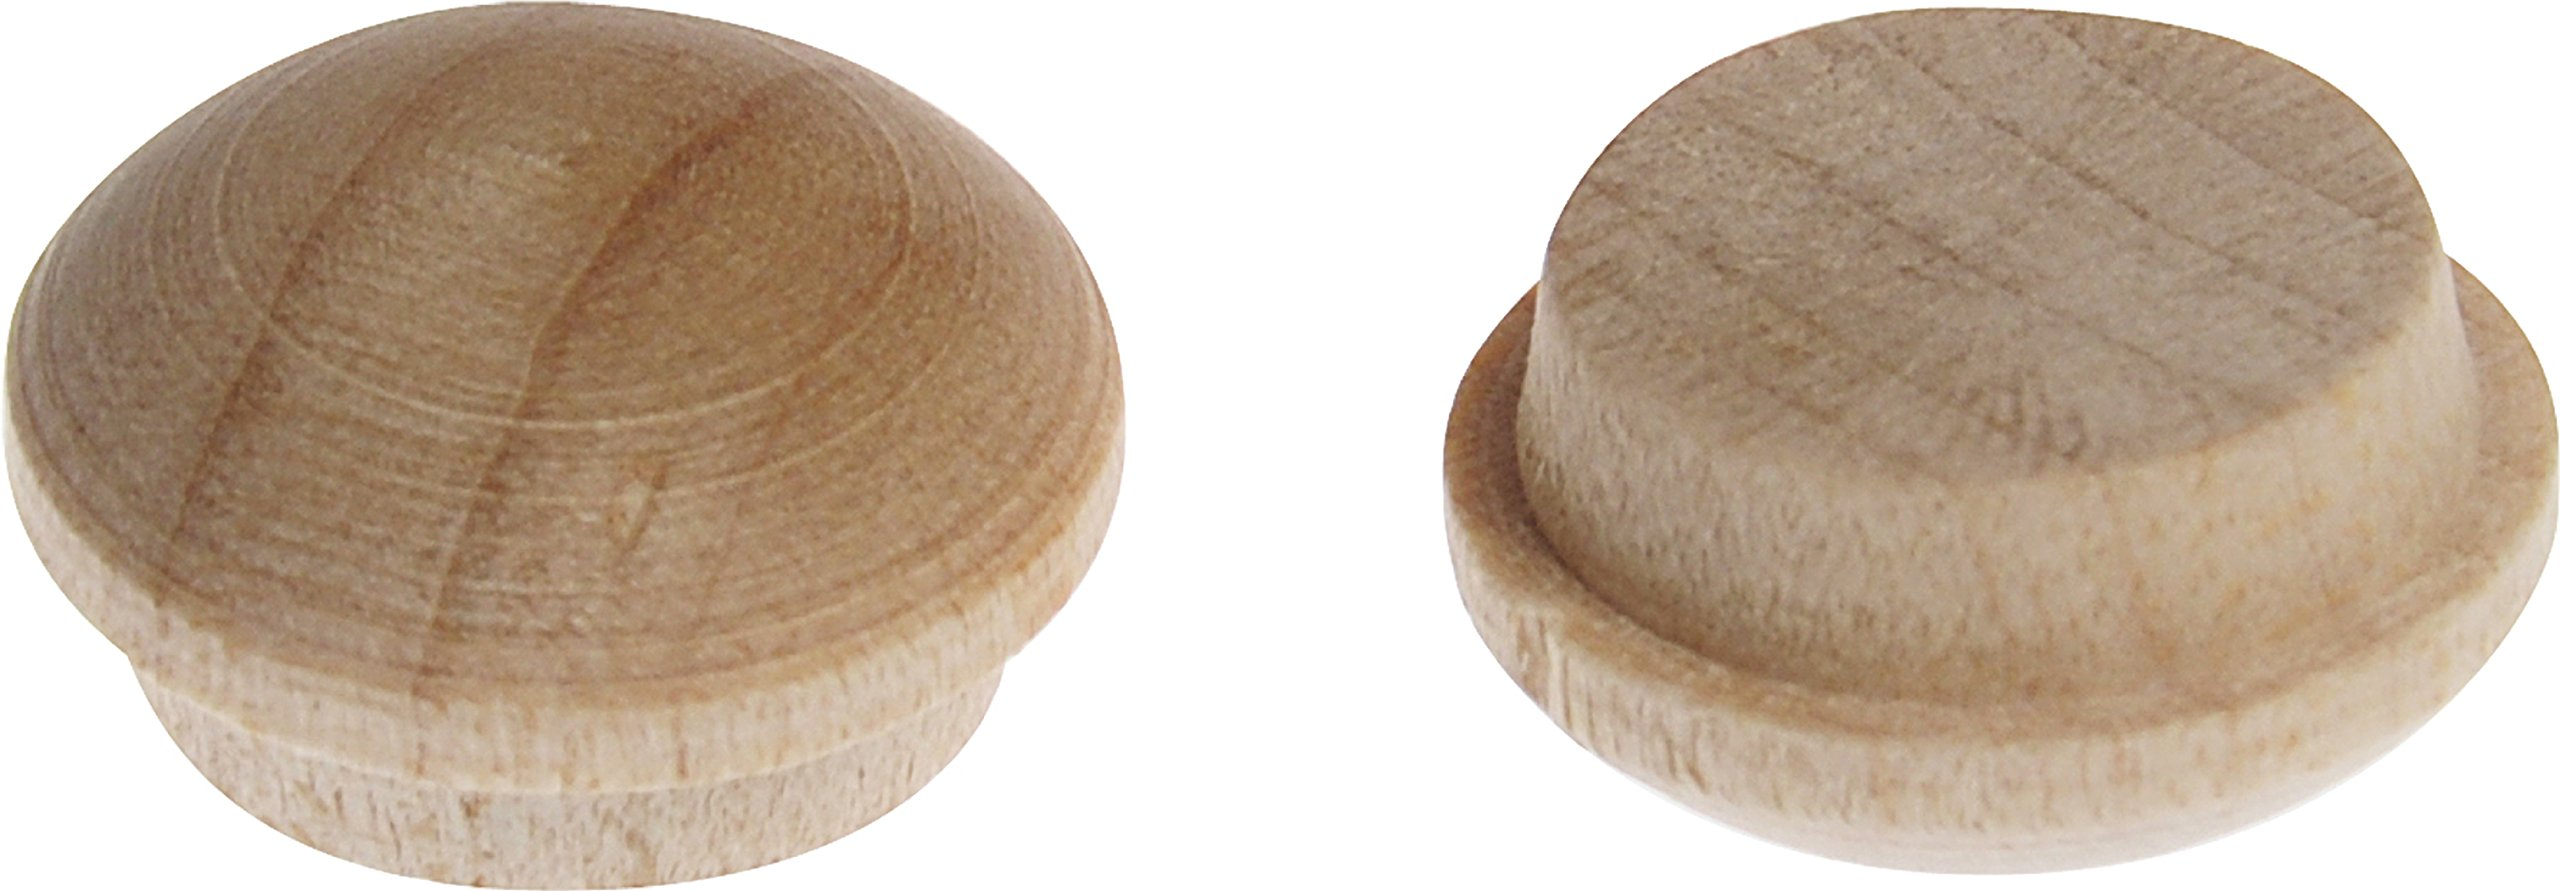 The Hillman Group 53015 Wooden Round Button, 3/8-Inch, 35-Pack